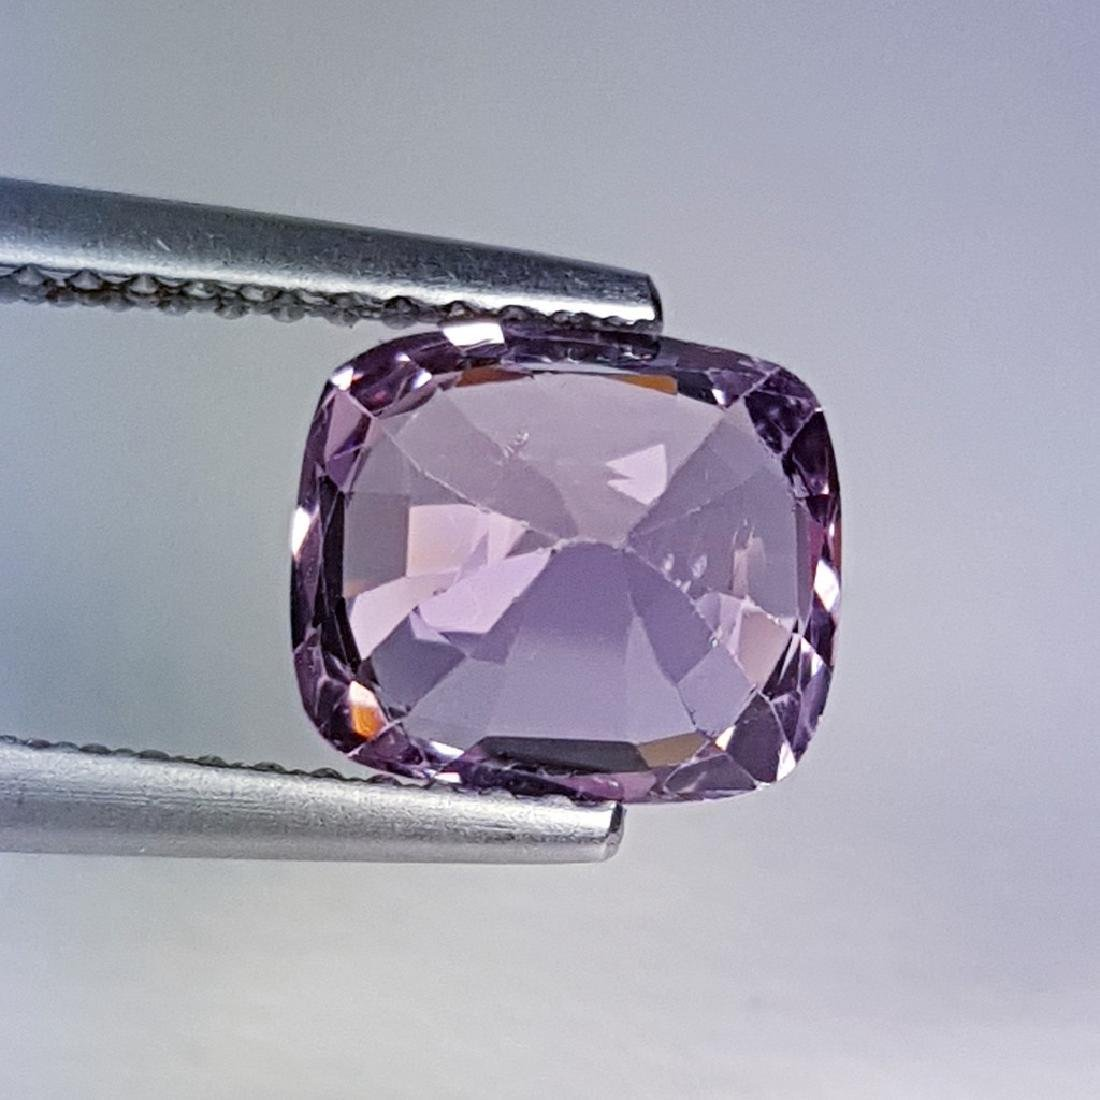 2.75 ct Exclusive Gem Cushion Cut Natural Spinel - 6